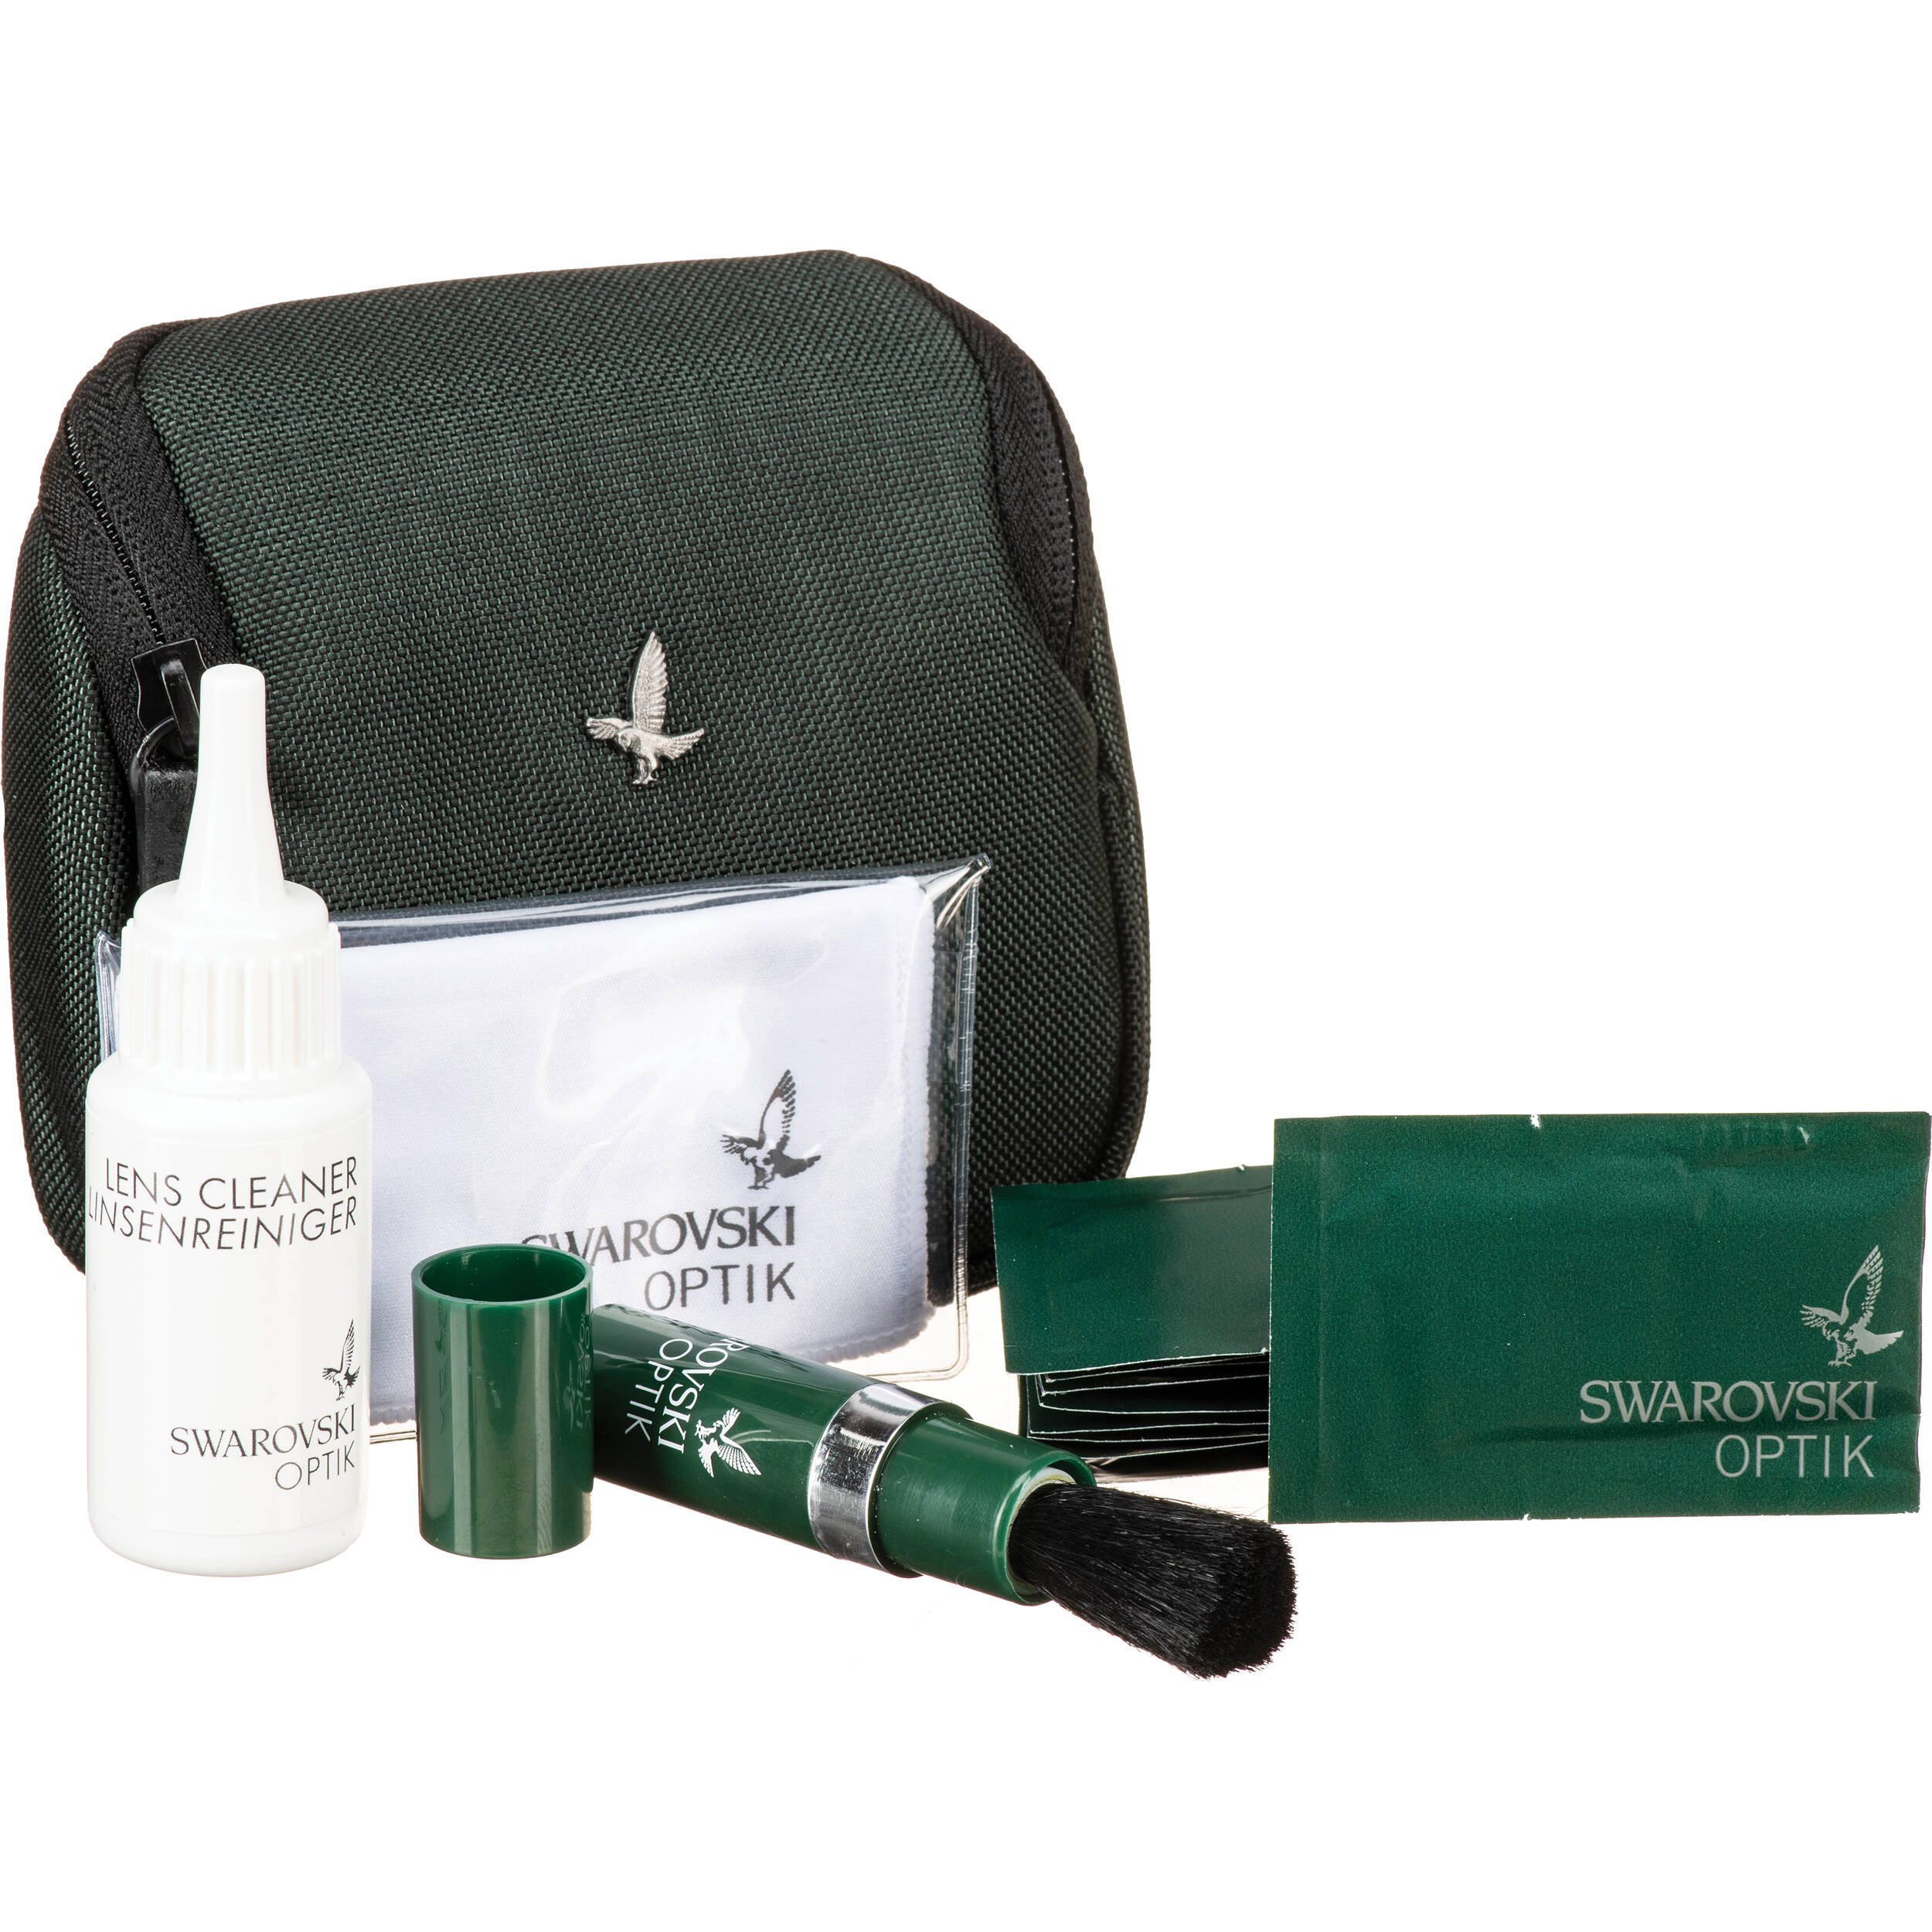 Cameras & Photo The Cheapest Price Swarovski Optic Cleaning Kit Set Binocular Cases & Accessories